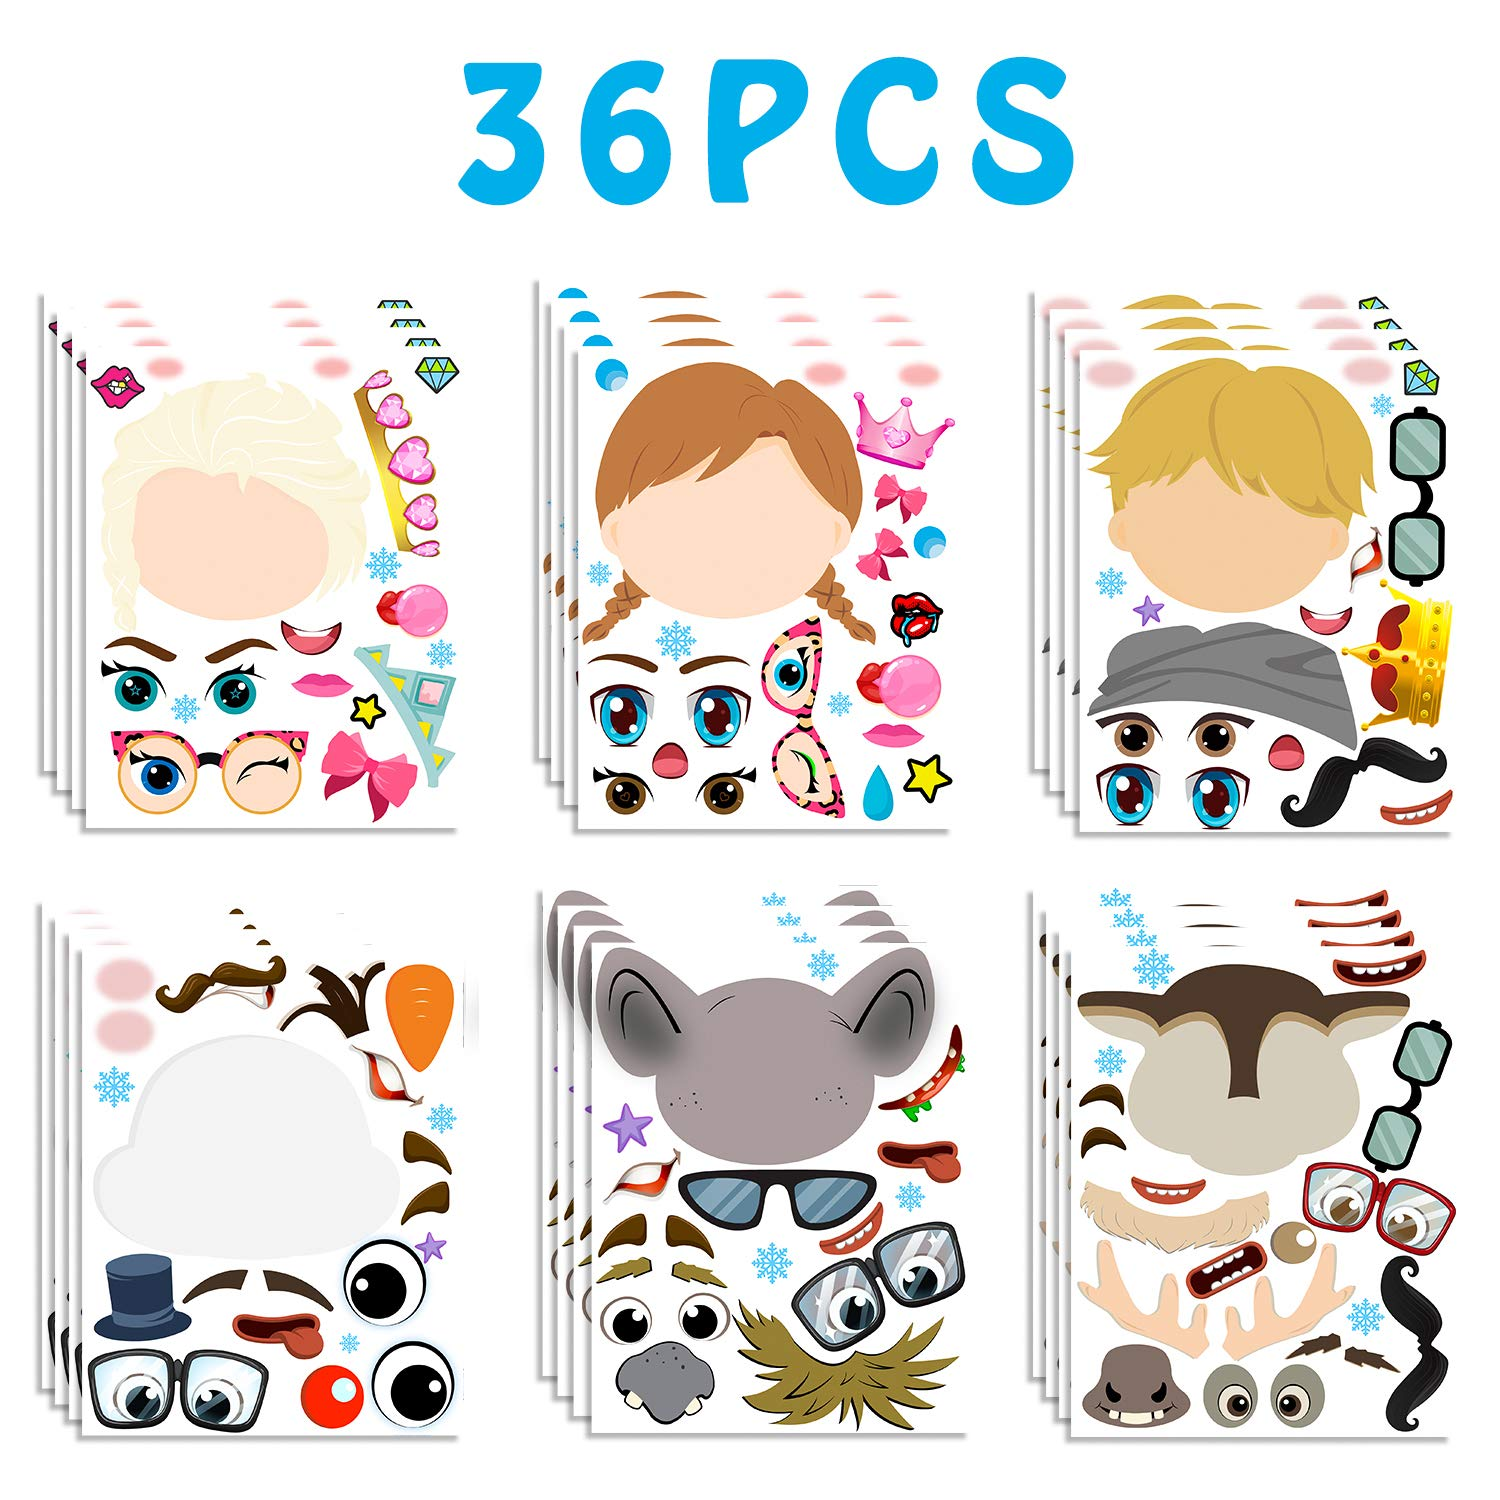 MALLMALL6/ 36Pcs Frozen Make/ a/ Face/ Stickers Princess Party/ Favors/ Games Frozen Themed Birthday Party Supplies Princess Sticker Snow Queen Party Decorations Elsa Anna Dress Up DIY/ Crafts for Kids